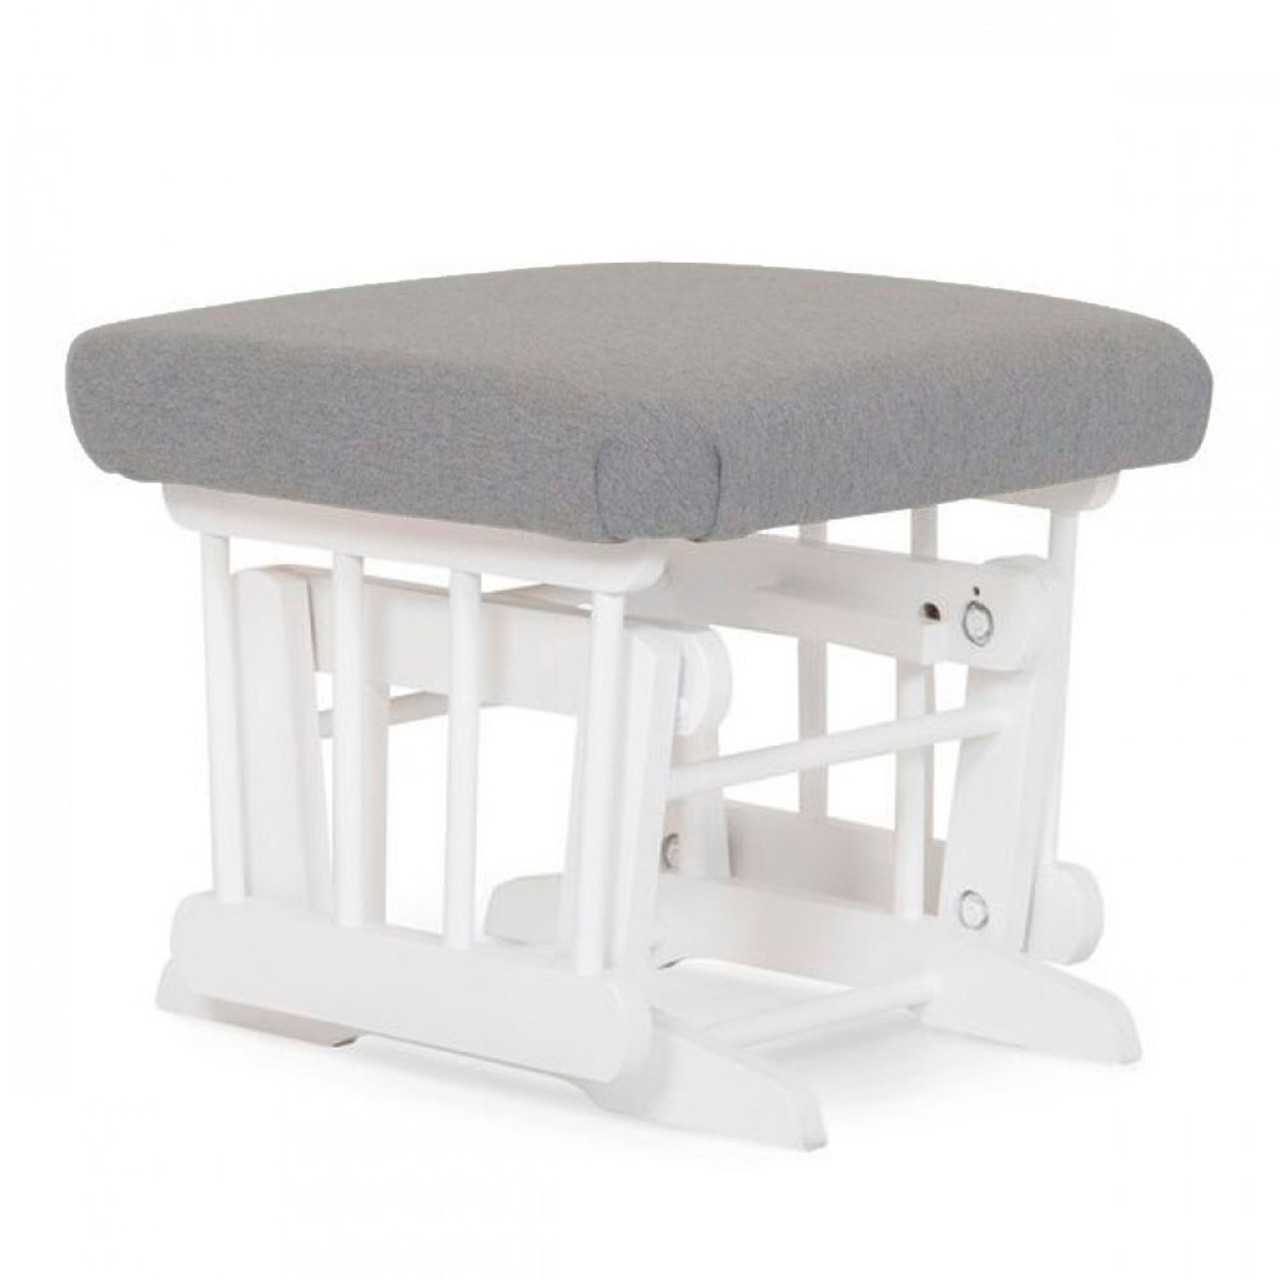 Prime Dutailier Modern Wooden Gliding Ottoman Light Grey And White Wood Finish Gmtry Best Dining Table And Chair Ideas Images Gmtryco